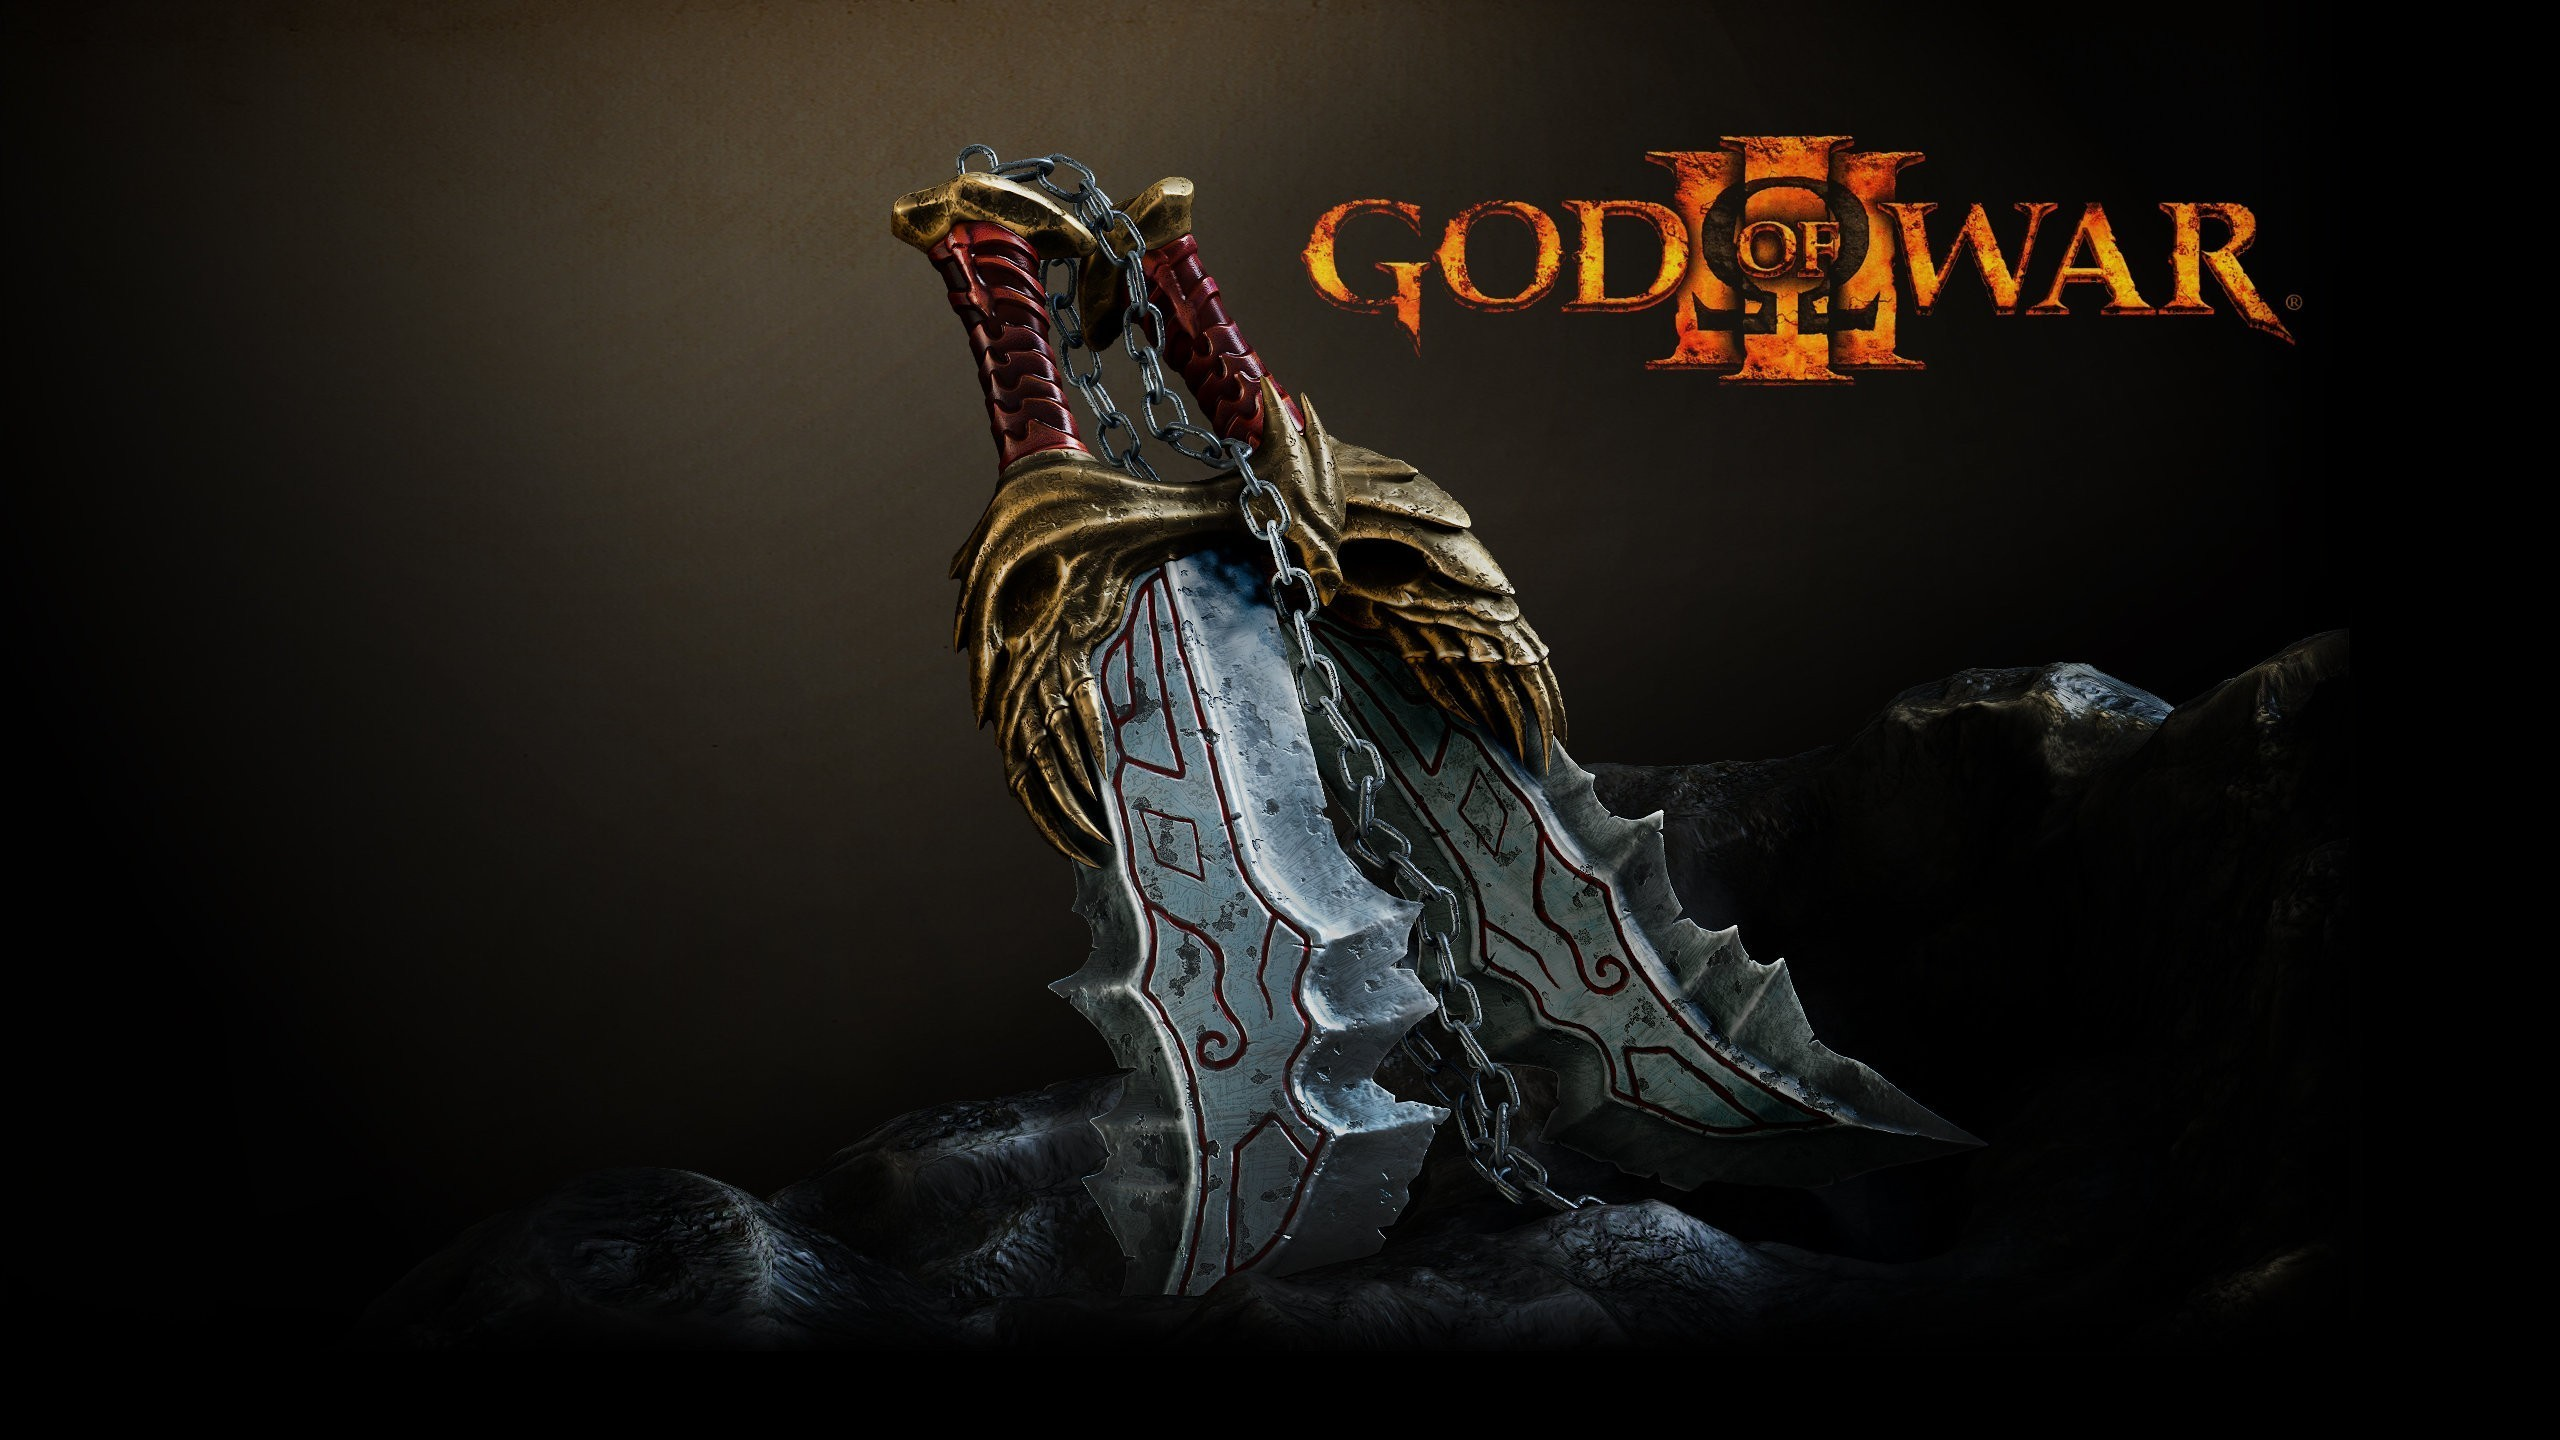 God of war wallpaper 82 images for Where to get wallpaper